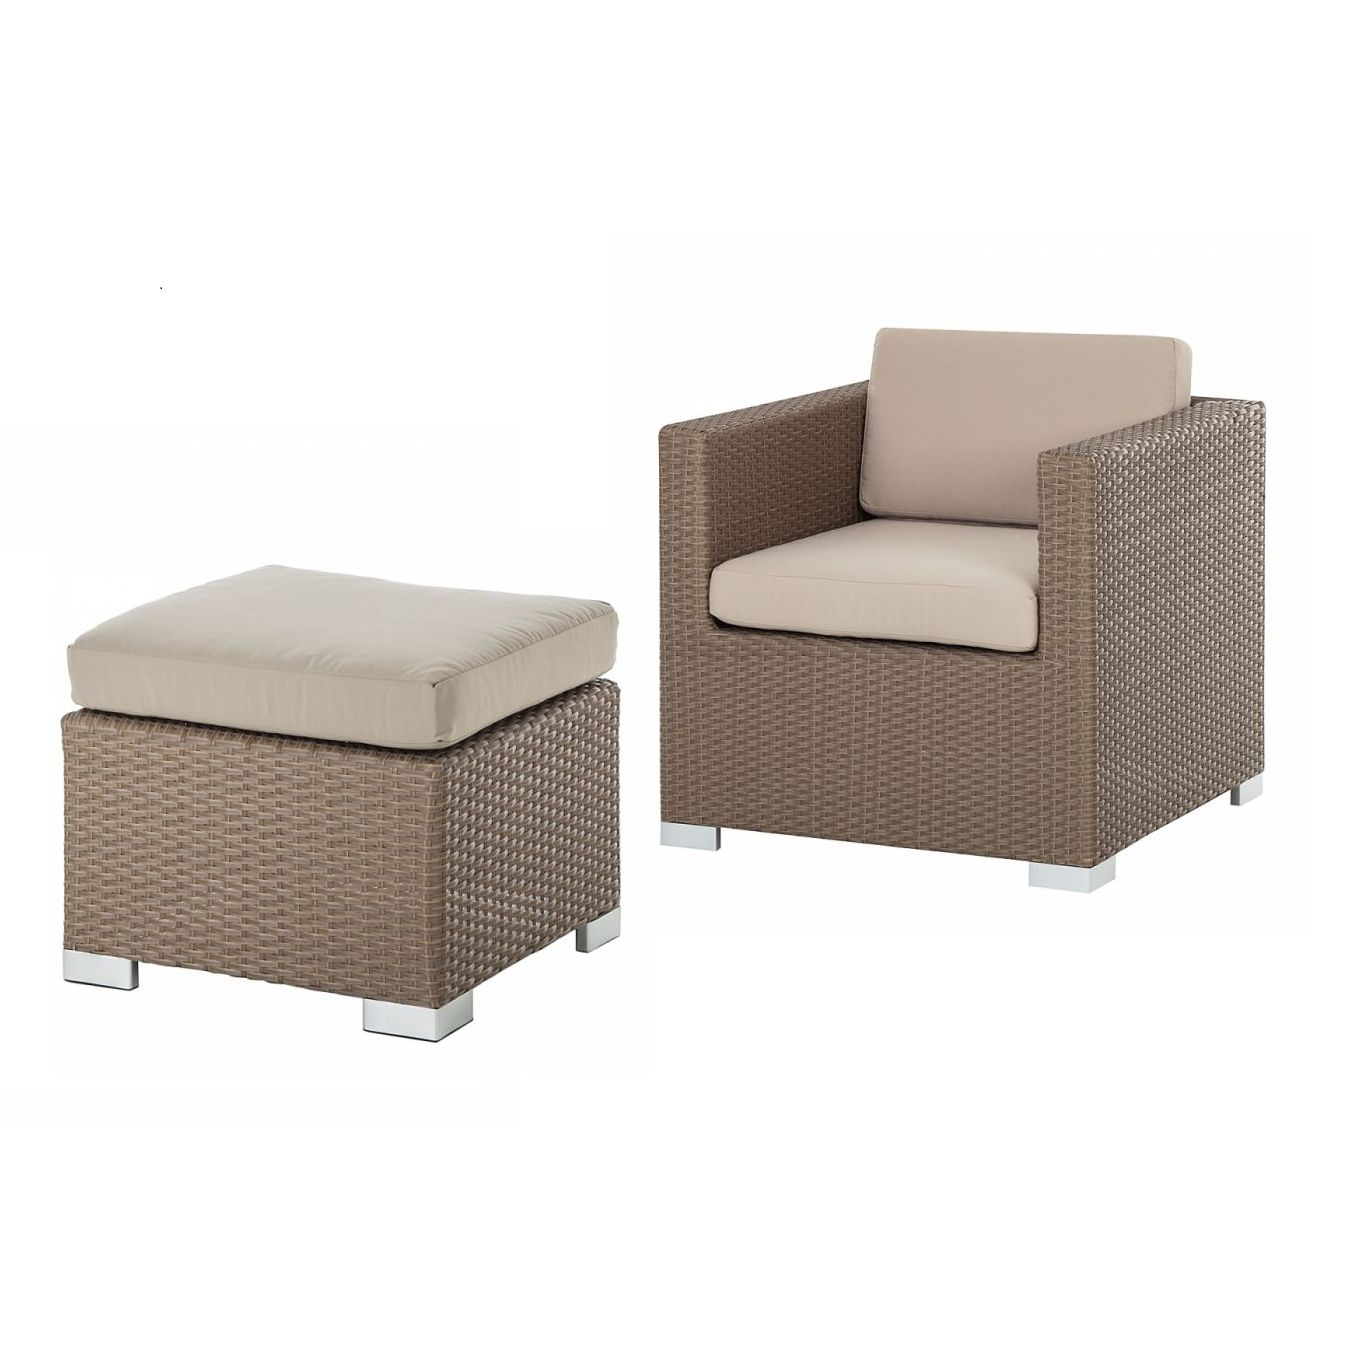 sessel hocker set rattanesco puca 2 teilig polyrattan textil braun beige kings garden kaufen. Black Bedroom Furniture Sets. Home Design Ideas